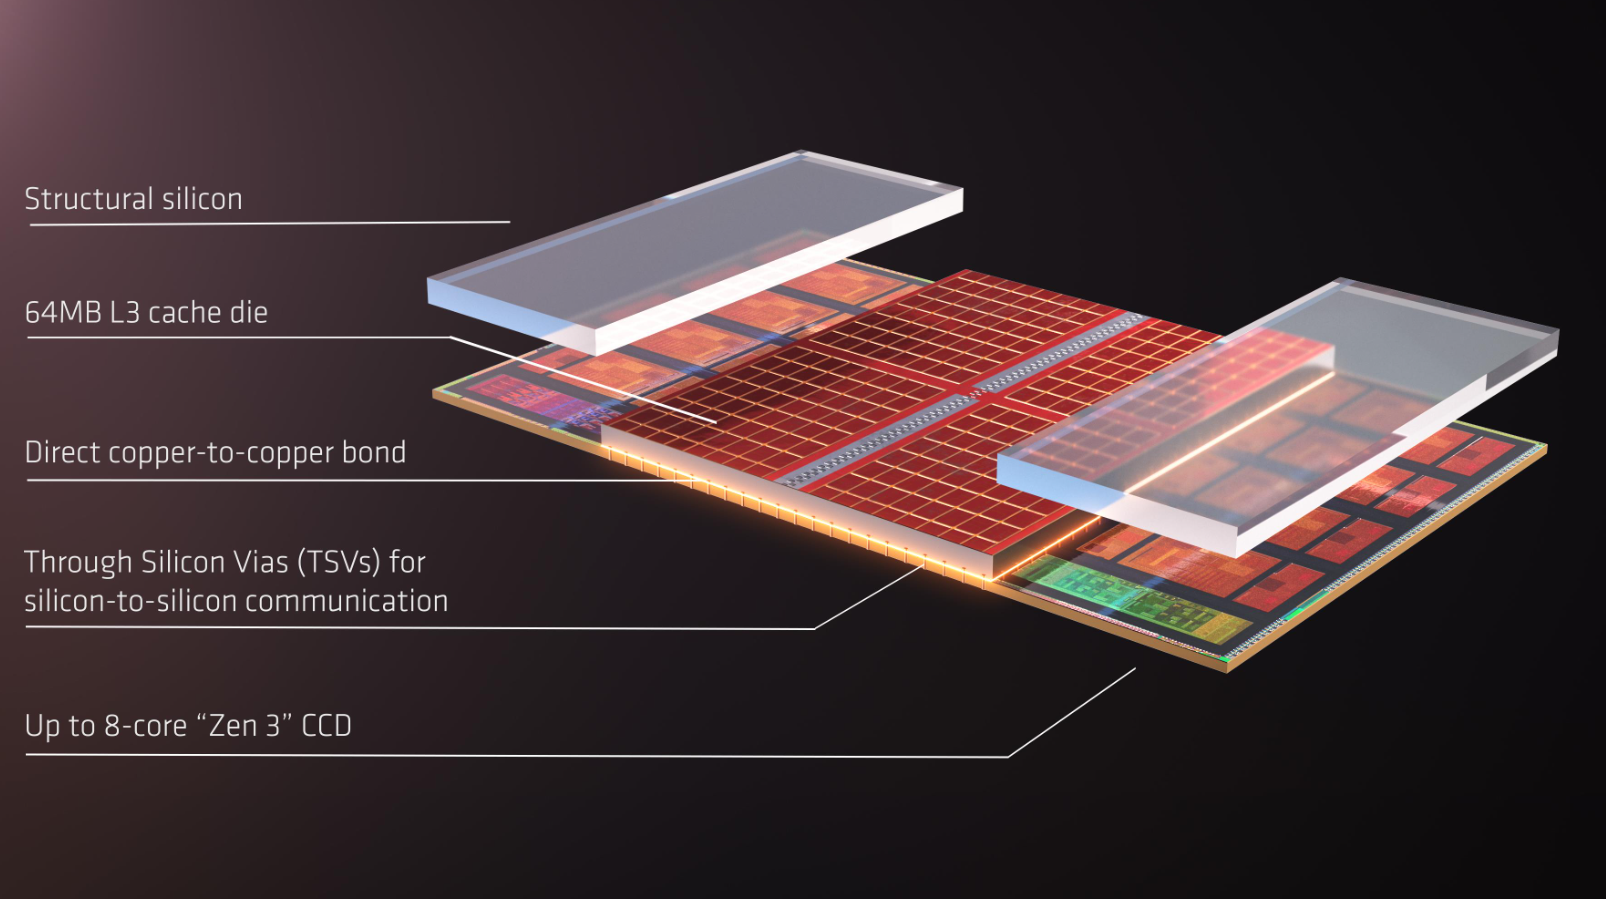 AMD Computex 2021 3D chip stacking technology breakdown